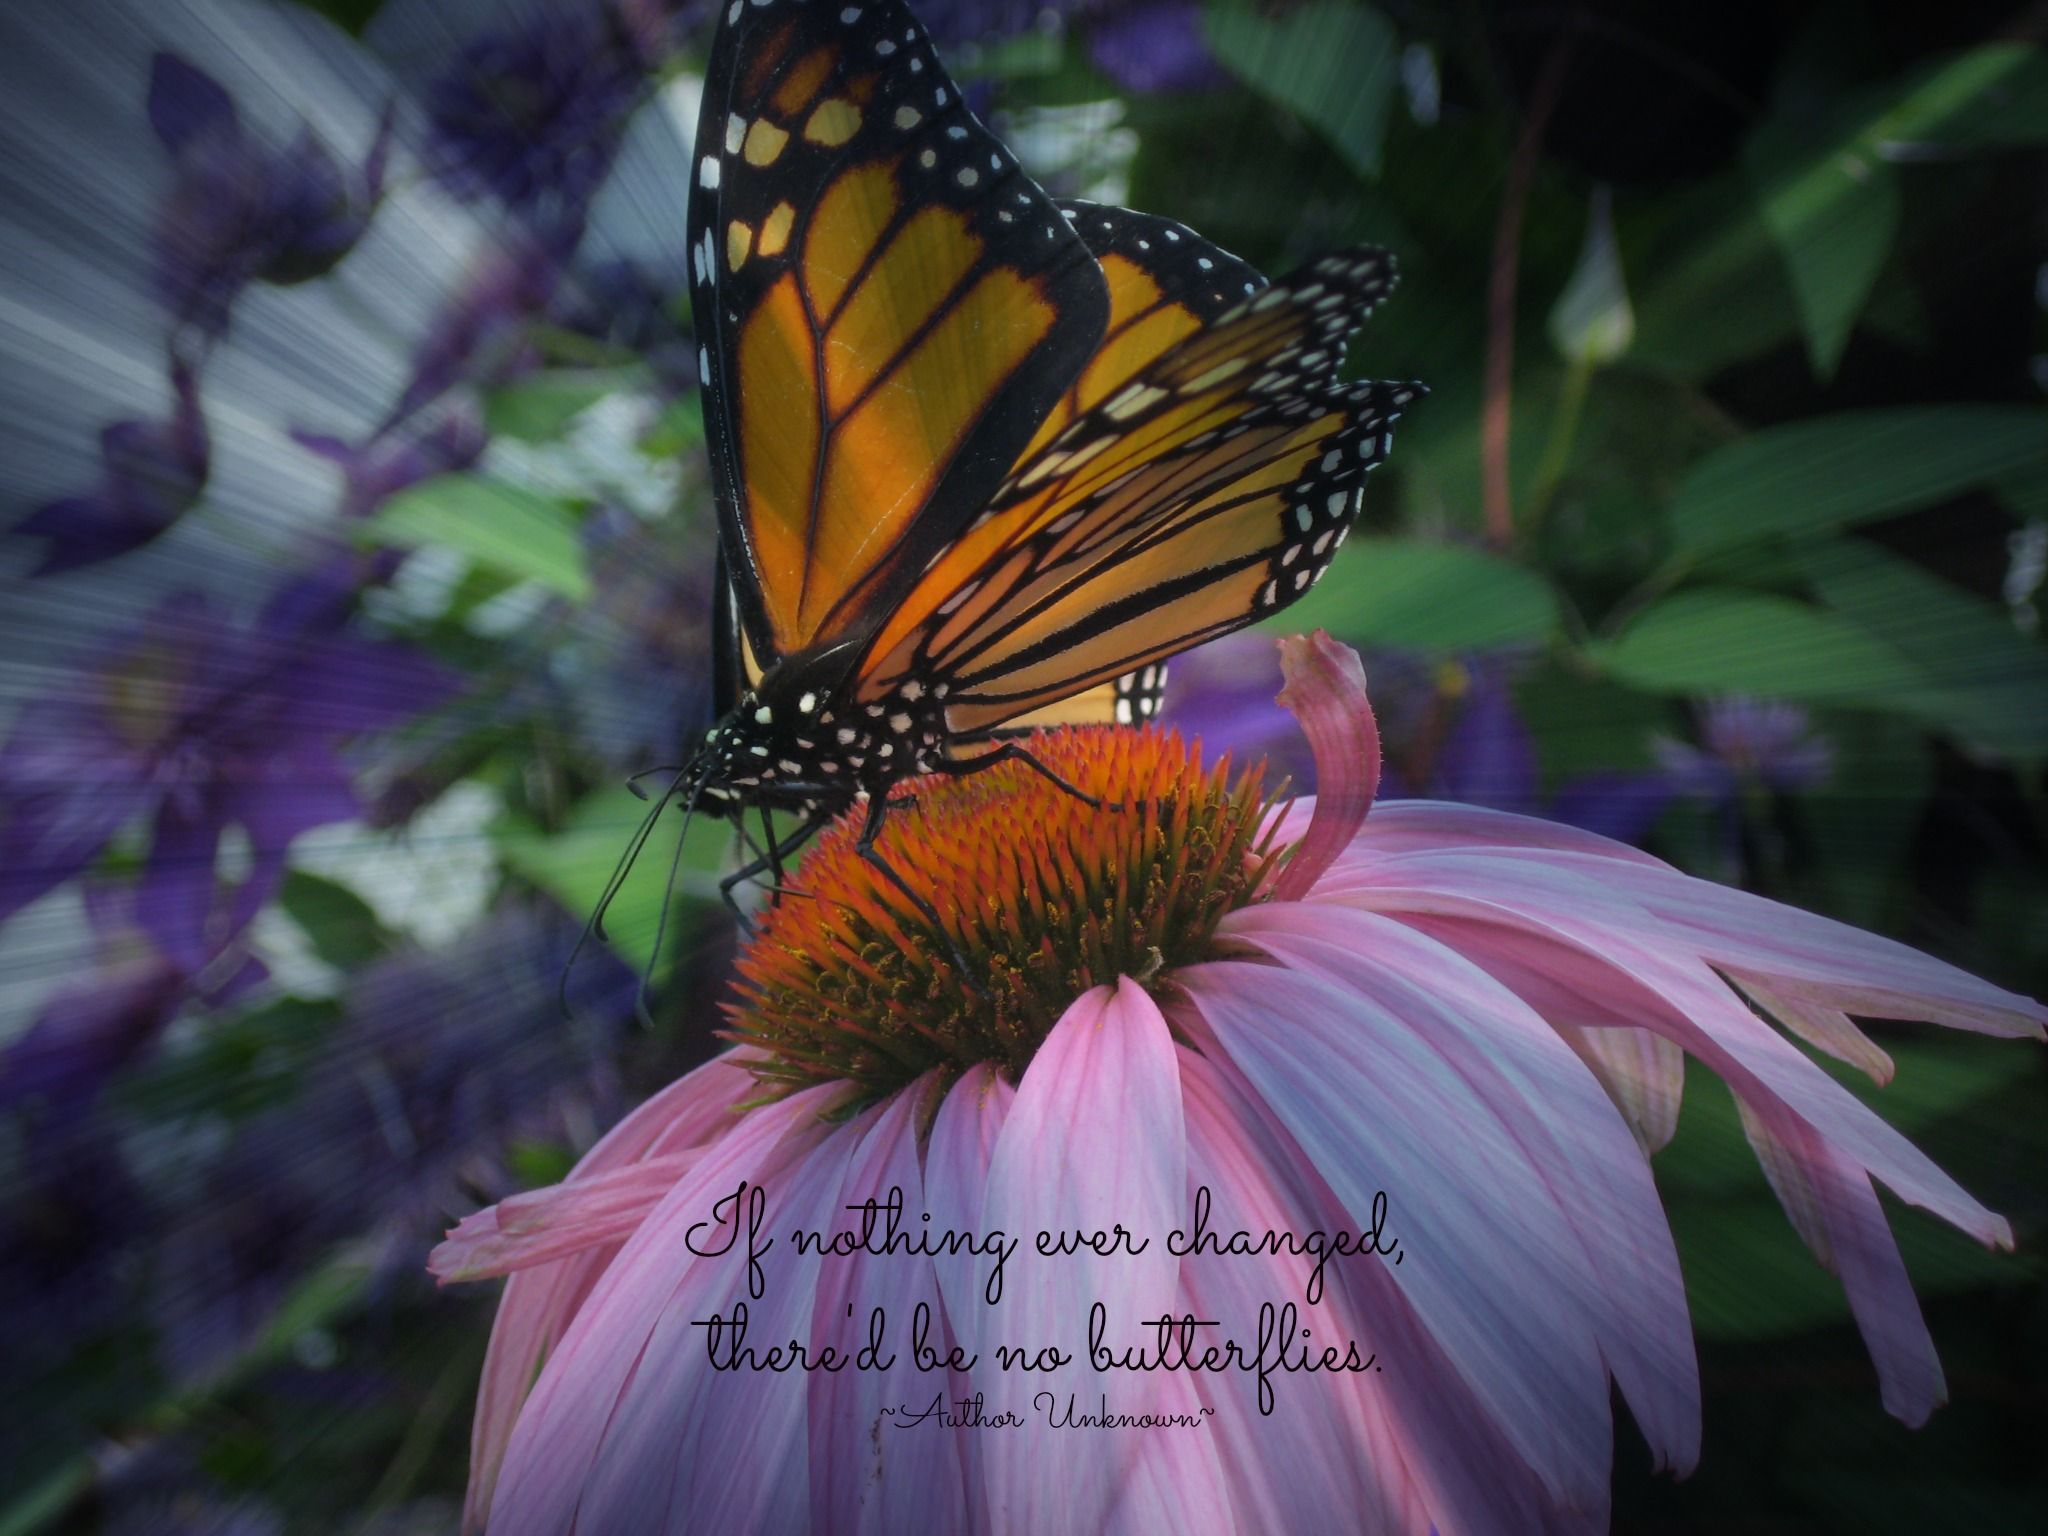 Hearts and Butterflies christian verses Butterfly Poems